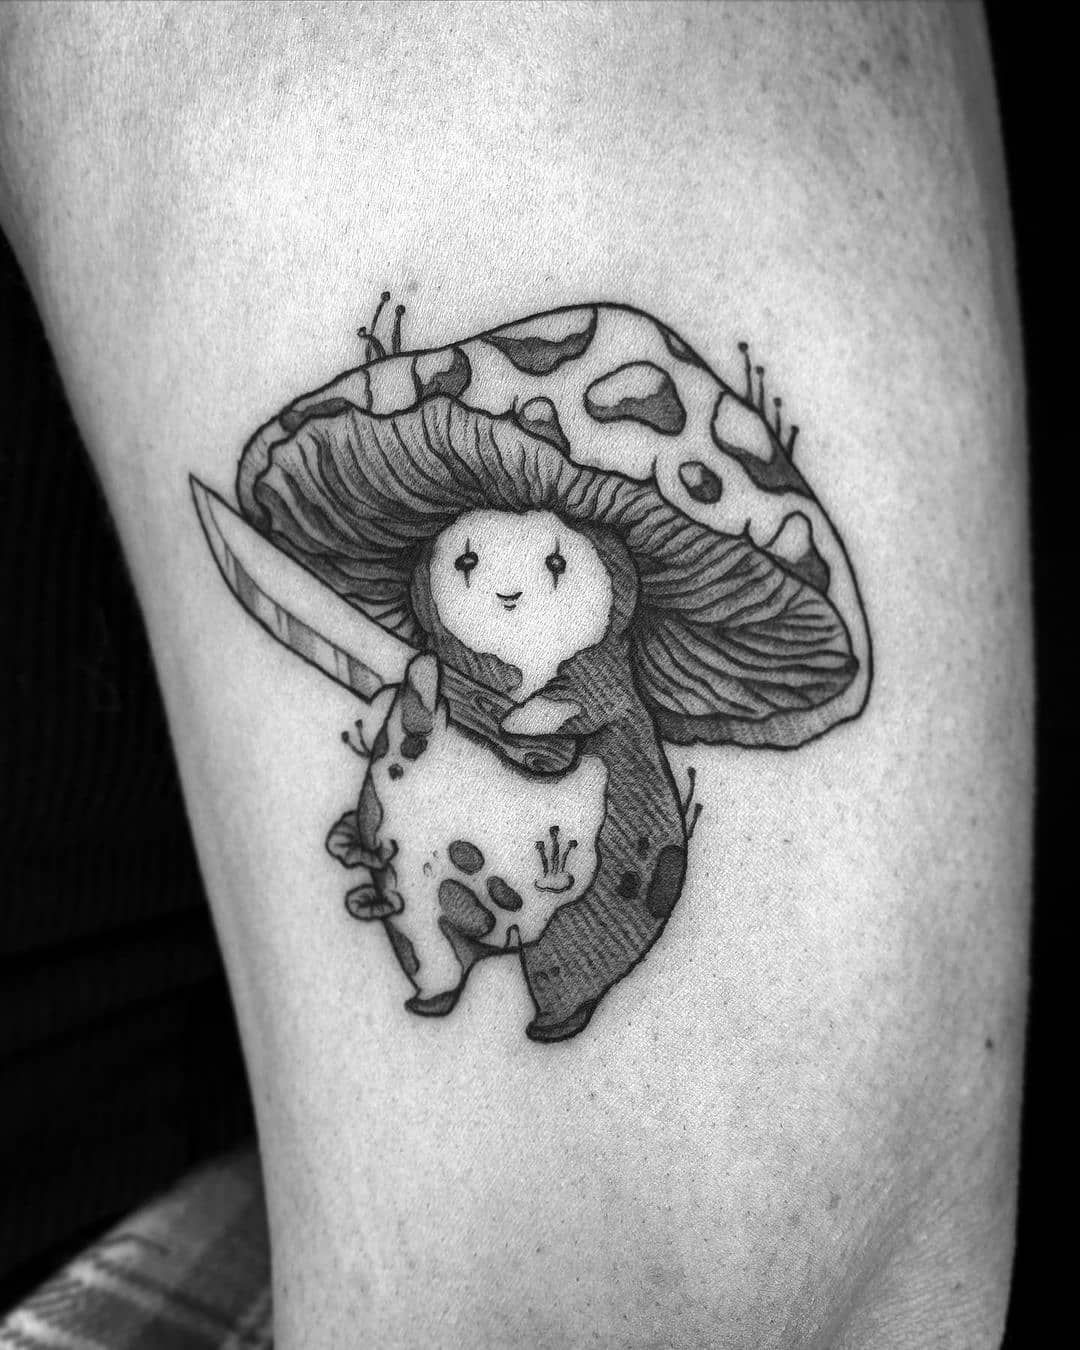 30+ Amazing Mushroom Tattoo Design Ideas (and What They Mean)